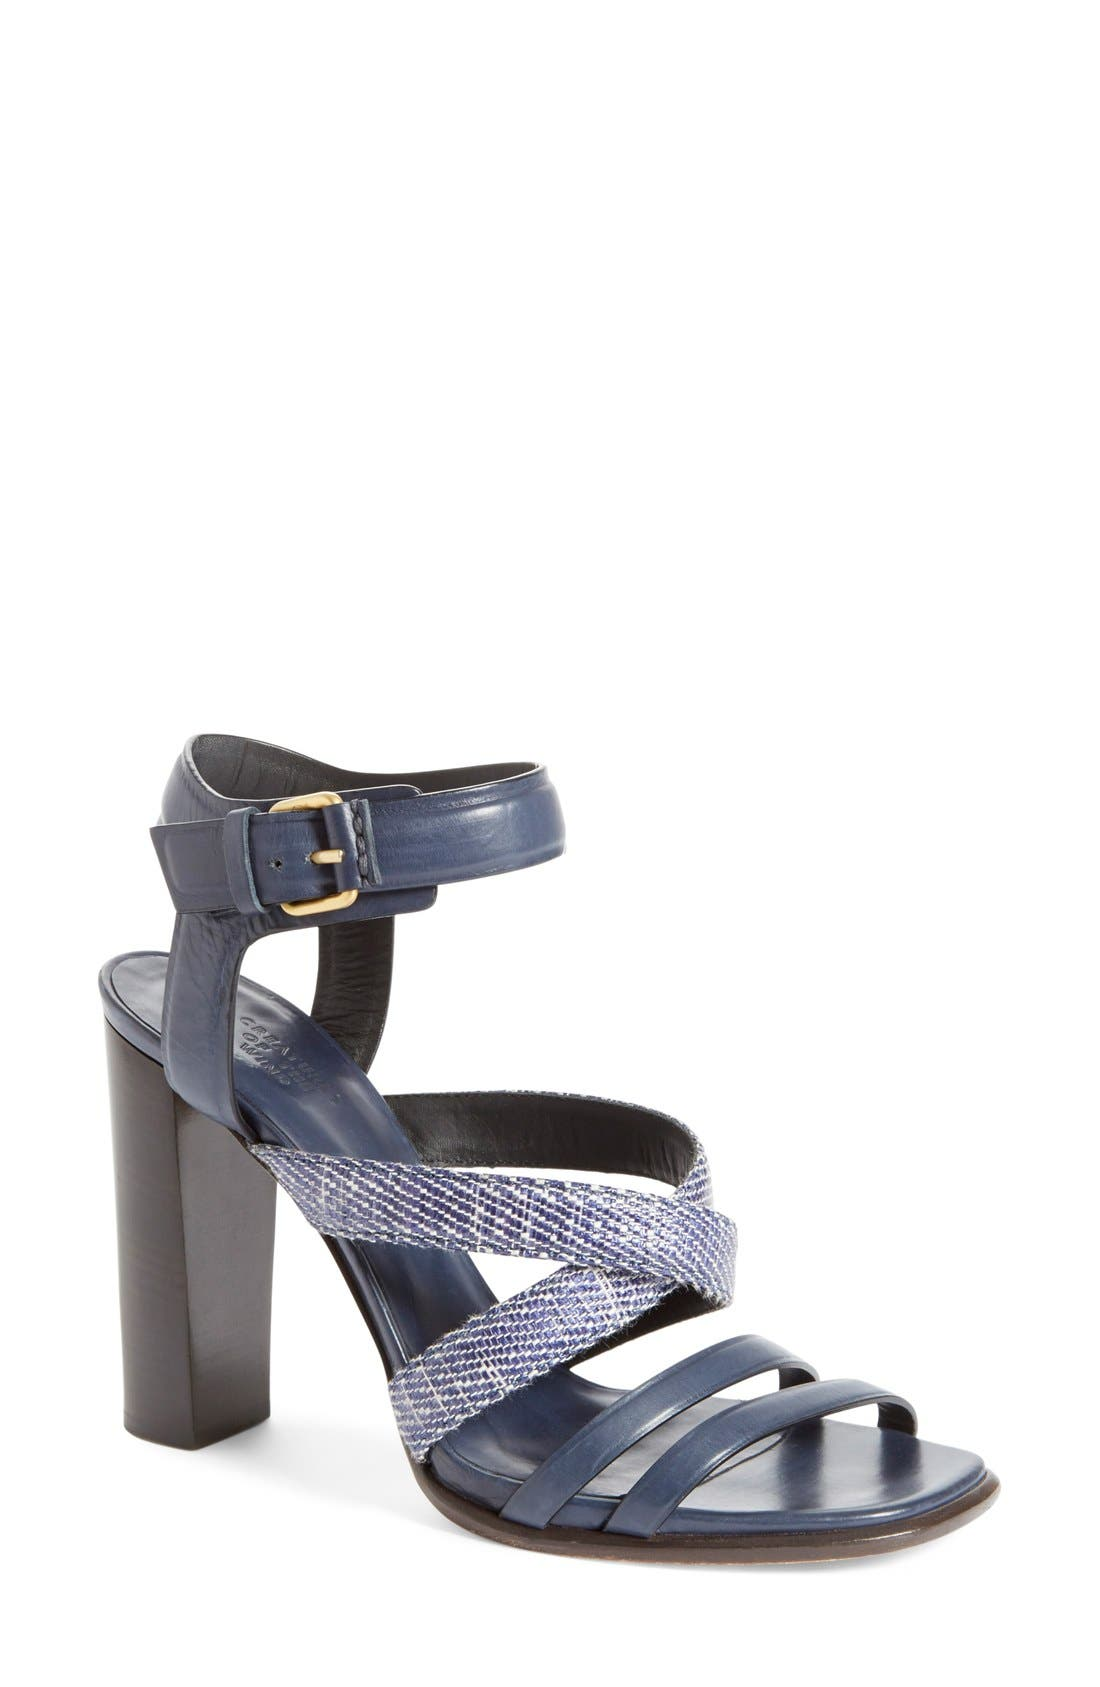 Main Image - Creatures of the Wind 'Kira' Ankle Strap Sandal (Women)